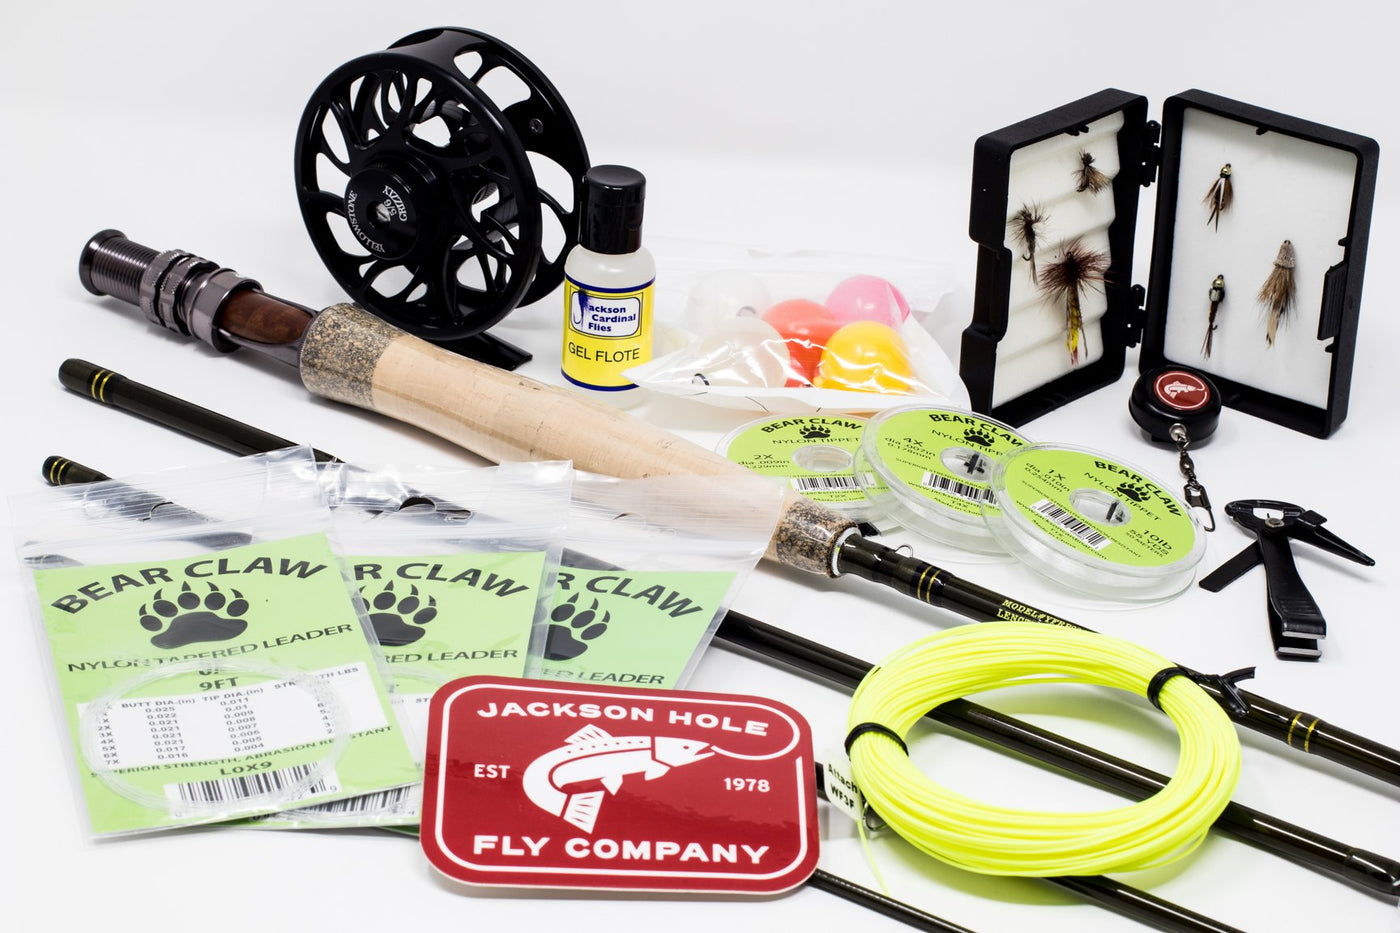 Green River Fly Fishing Kit